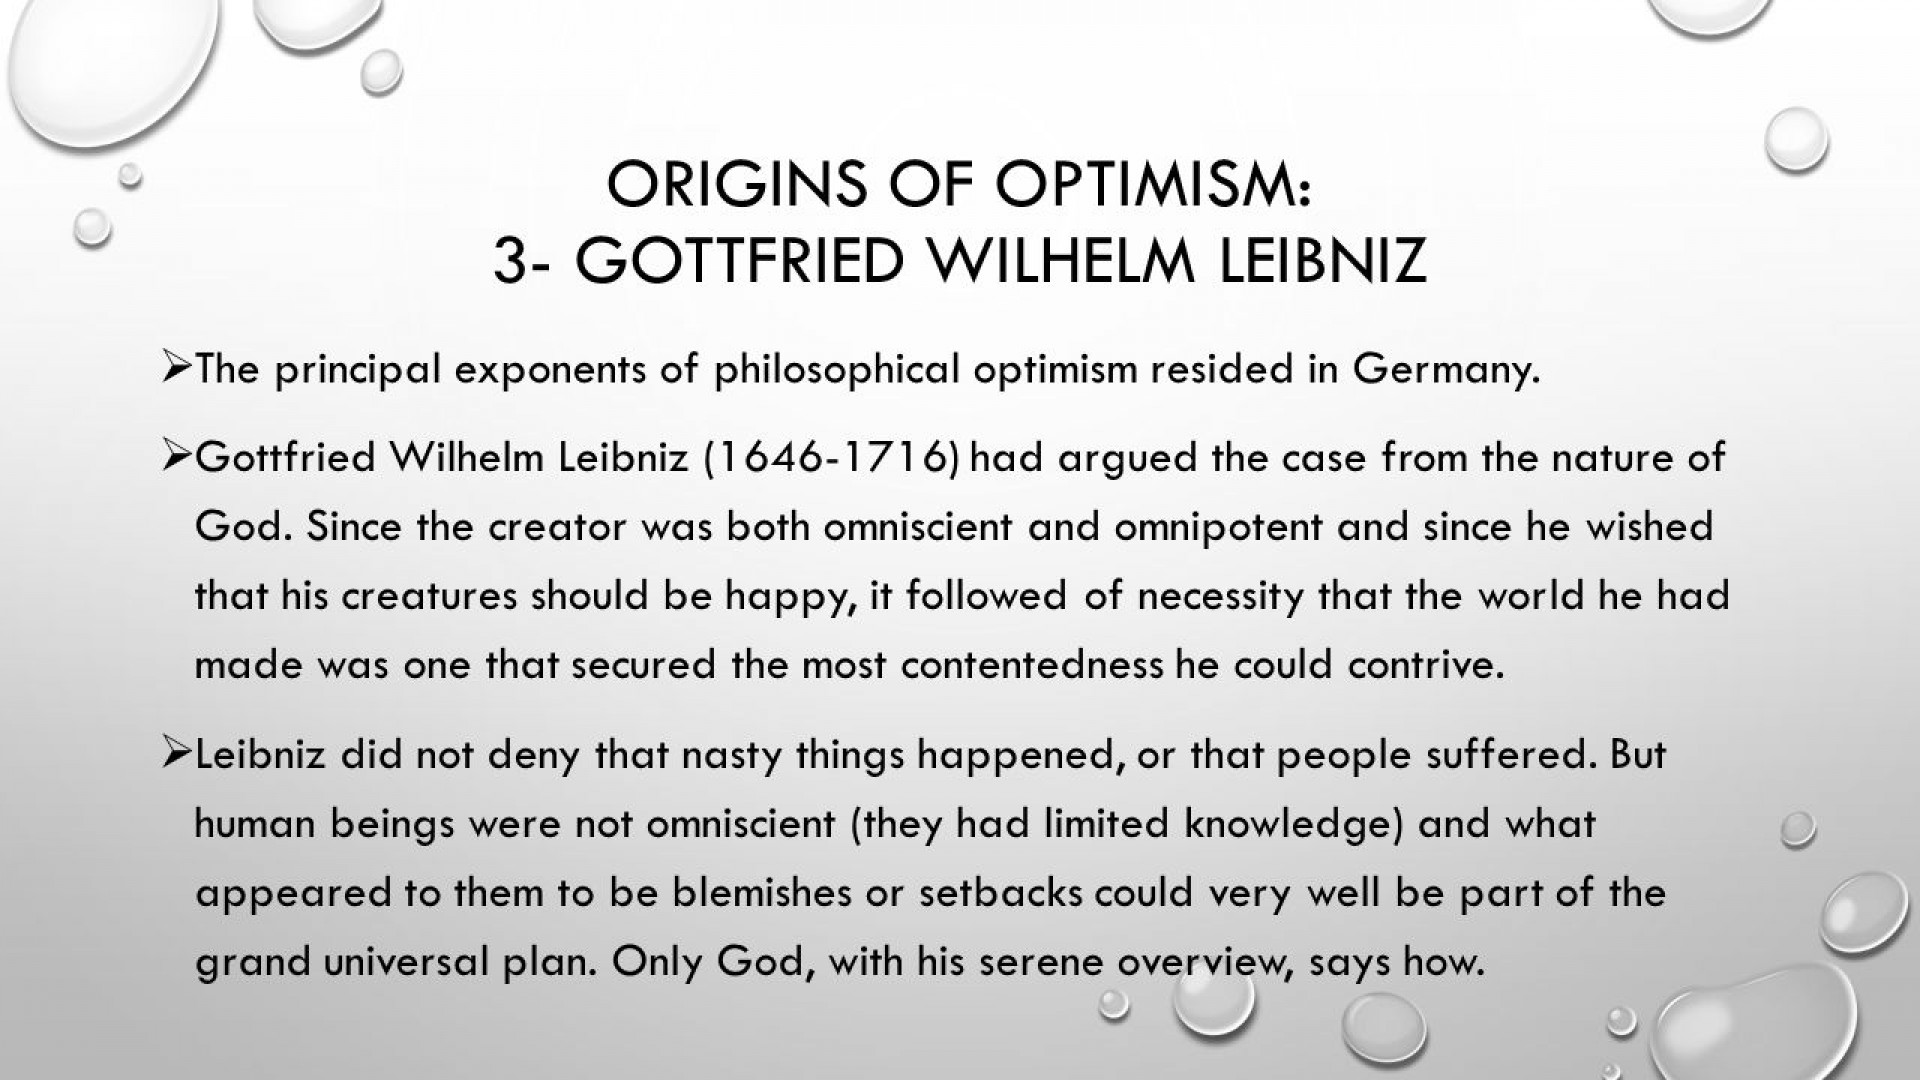 013 Optimism Definition Essay Essays Humility An On Sli Informative Conclusions Sample Outstanding 1920